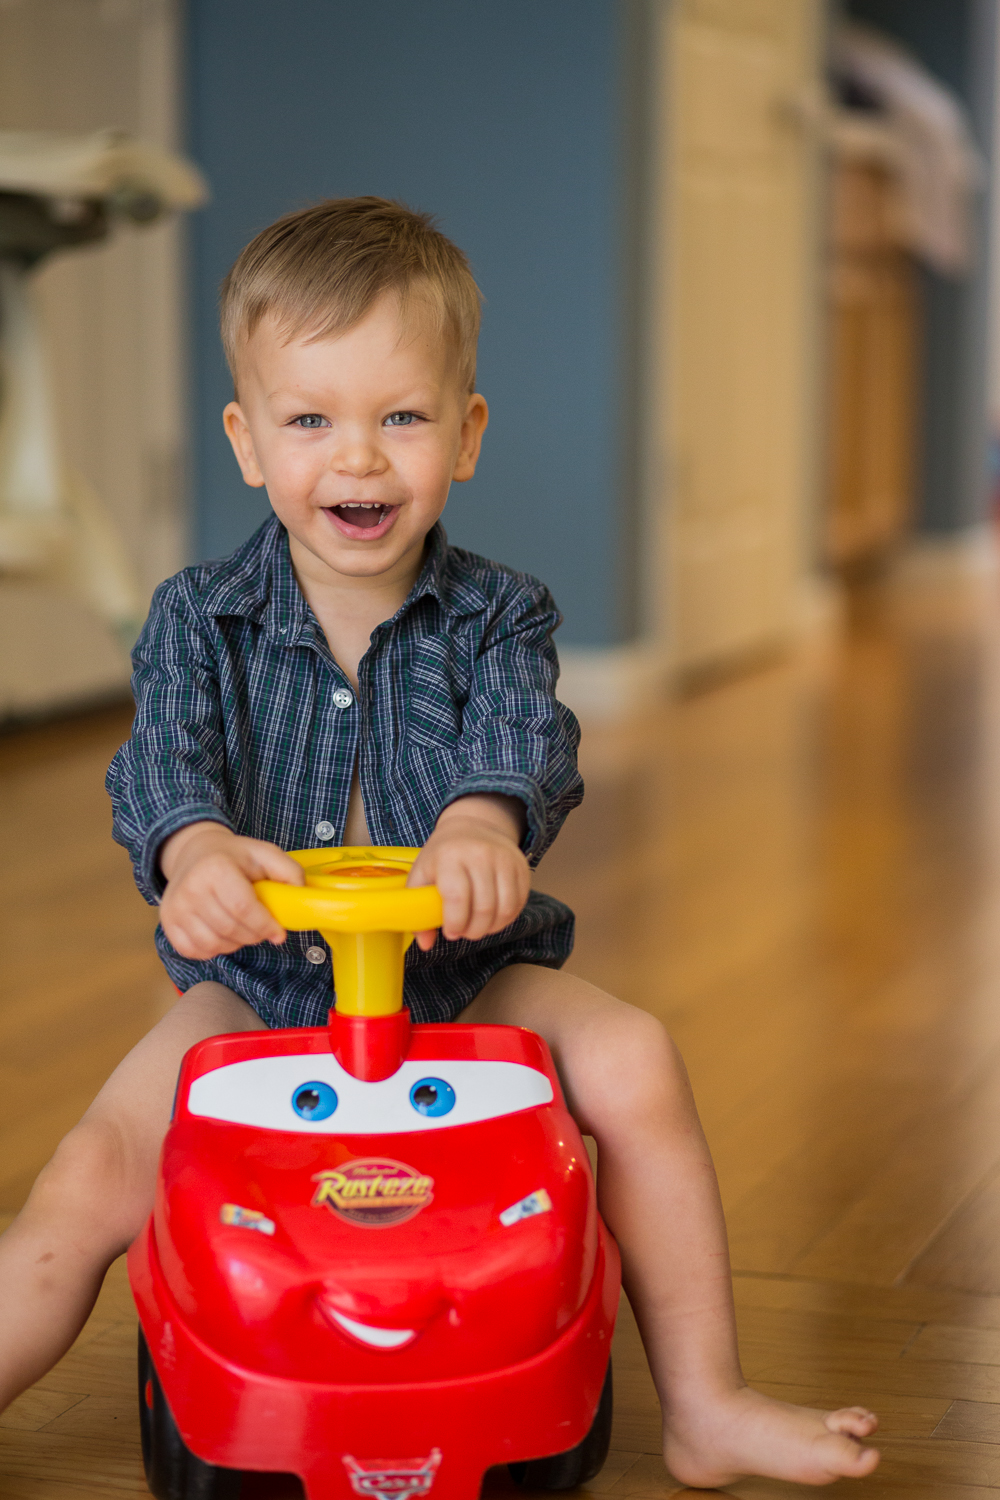 Lightning McQueen racer car toddler lixxim photography sacramento kids.jpg